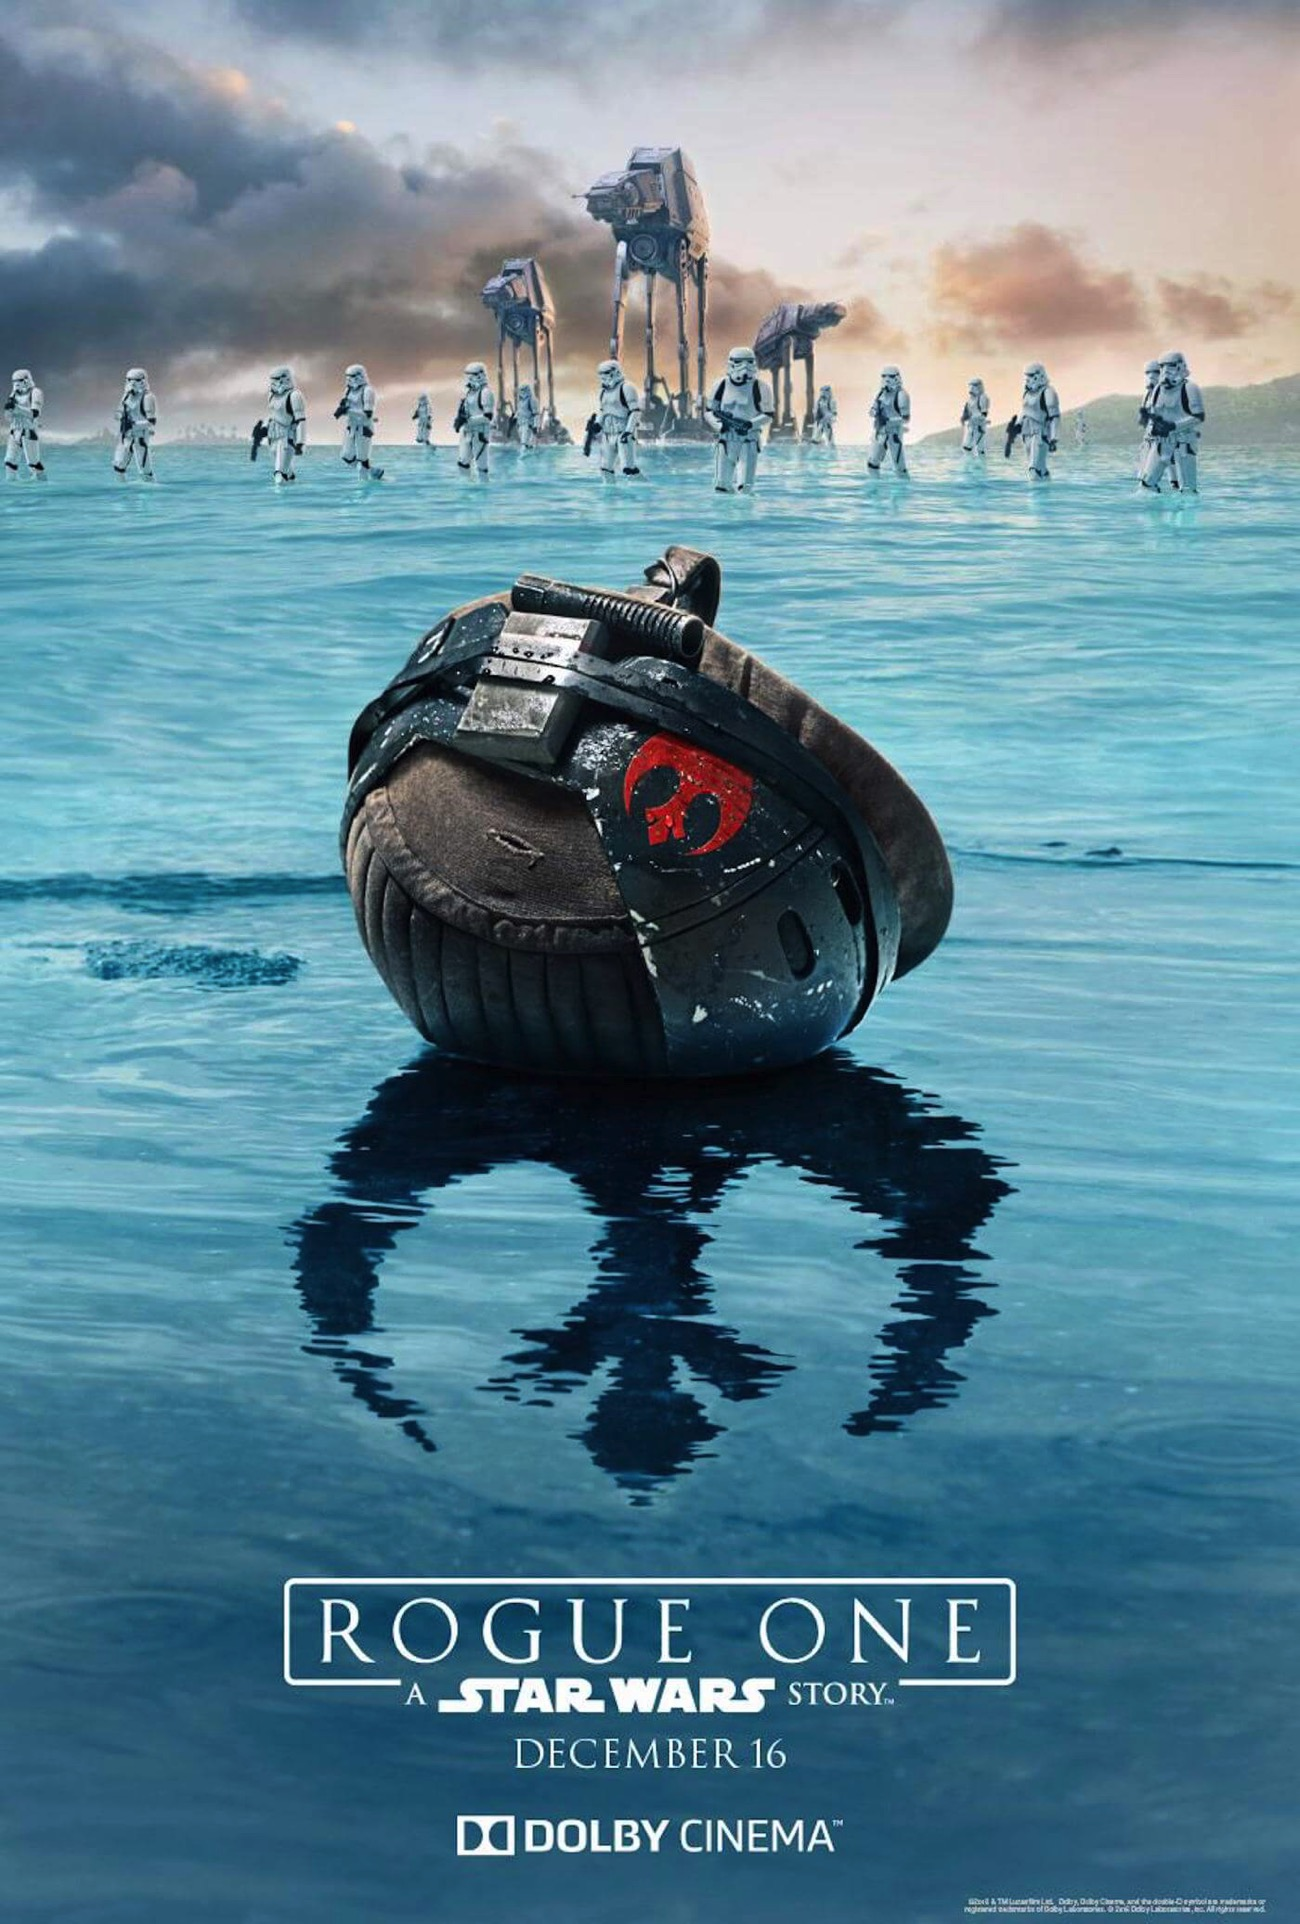 rogue-one-dolby-poster.jpg